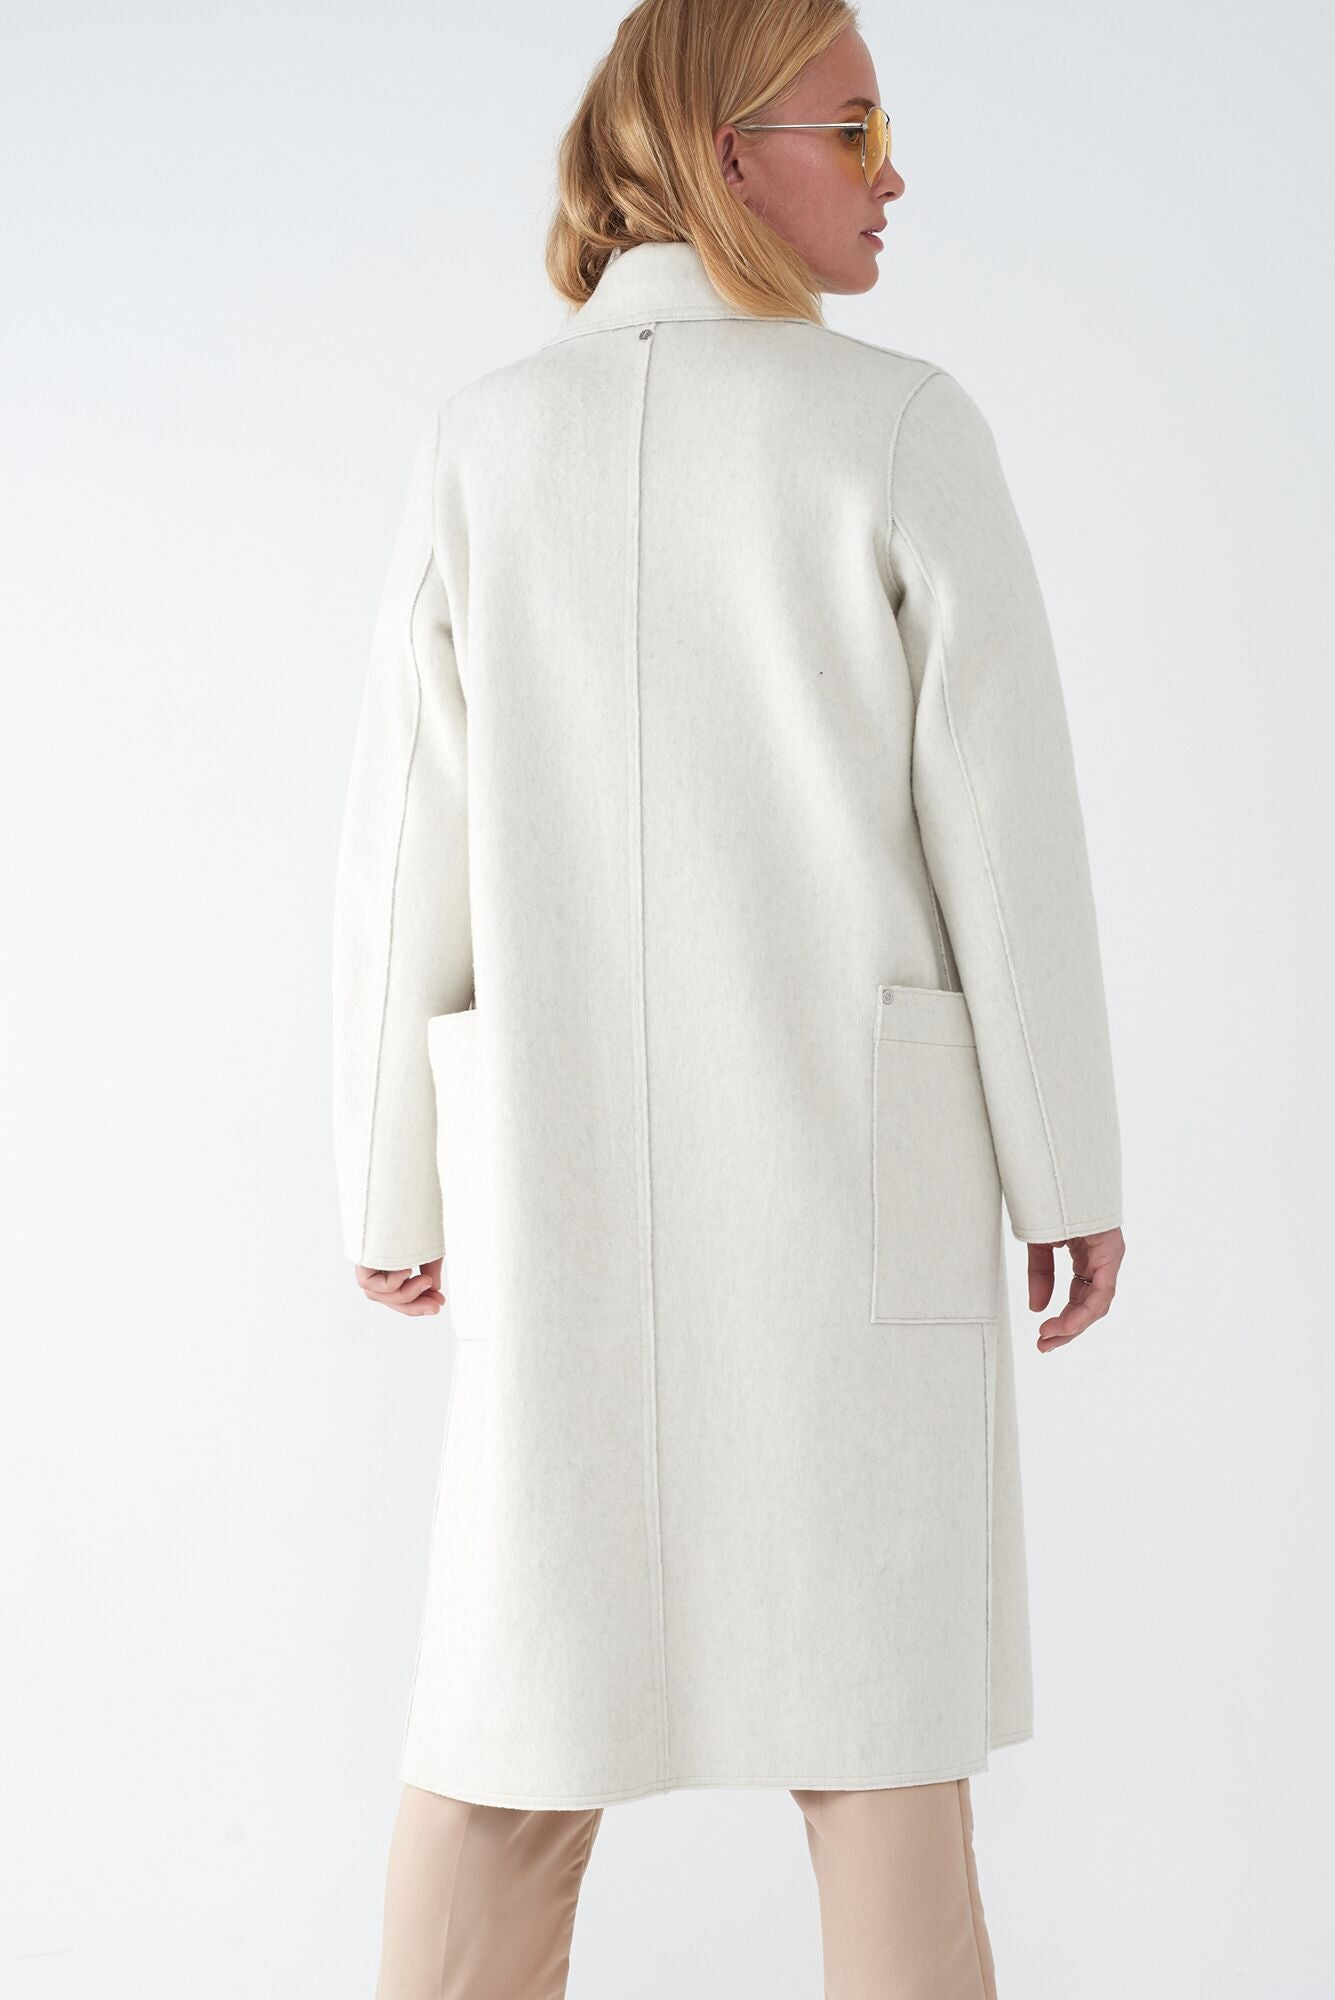 BELLA BONE - BRUSHED KNIT COAT